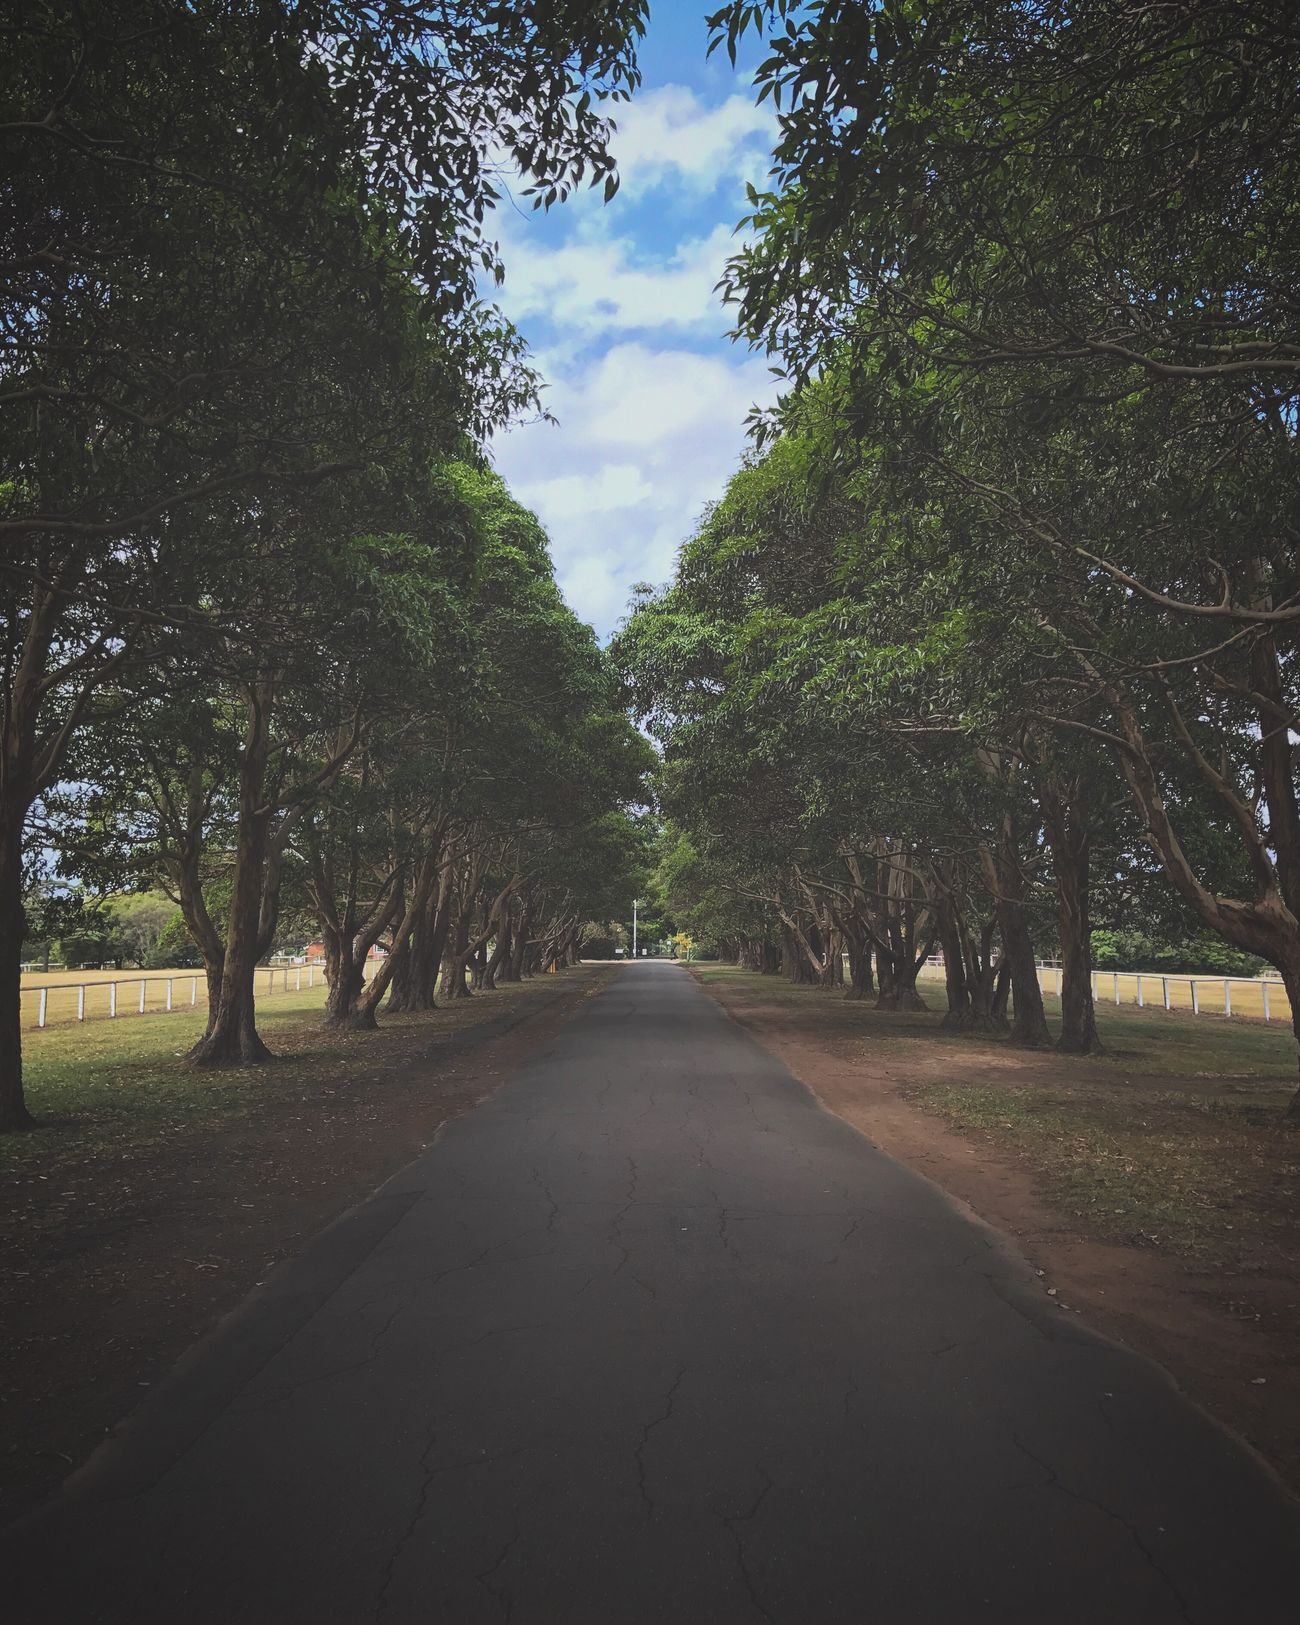 Never stop exploring Tree Nature The Way Forward Treelined Outdoors Road Sky No People Tranquility Growth Beauty In Nature Day Tranquil Scene Scenics Australia Nature_collection Nature_perfection Beauty In Nature Awesome_shots Special👌shot